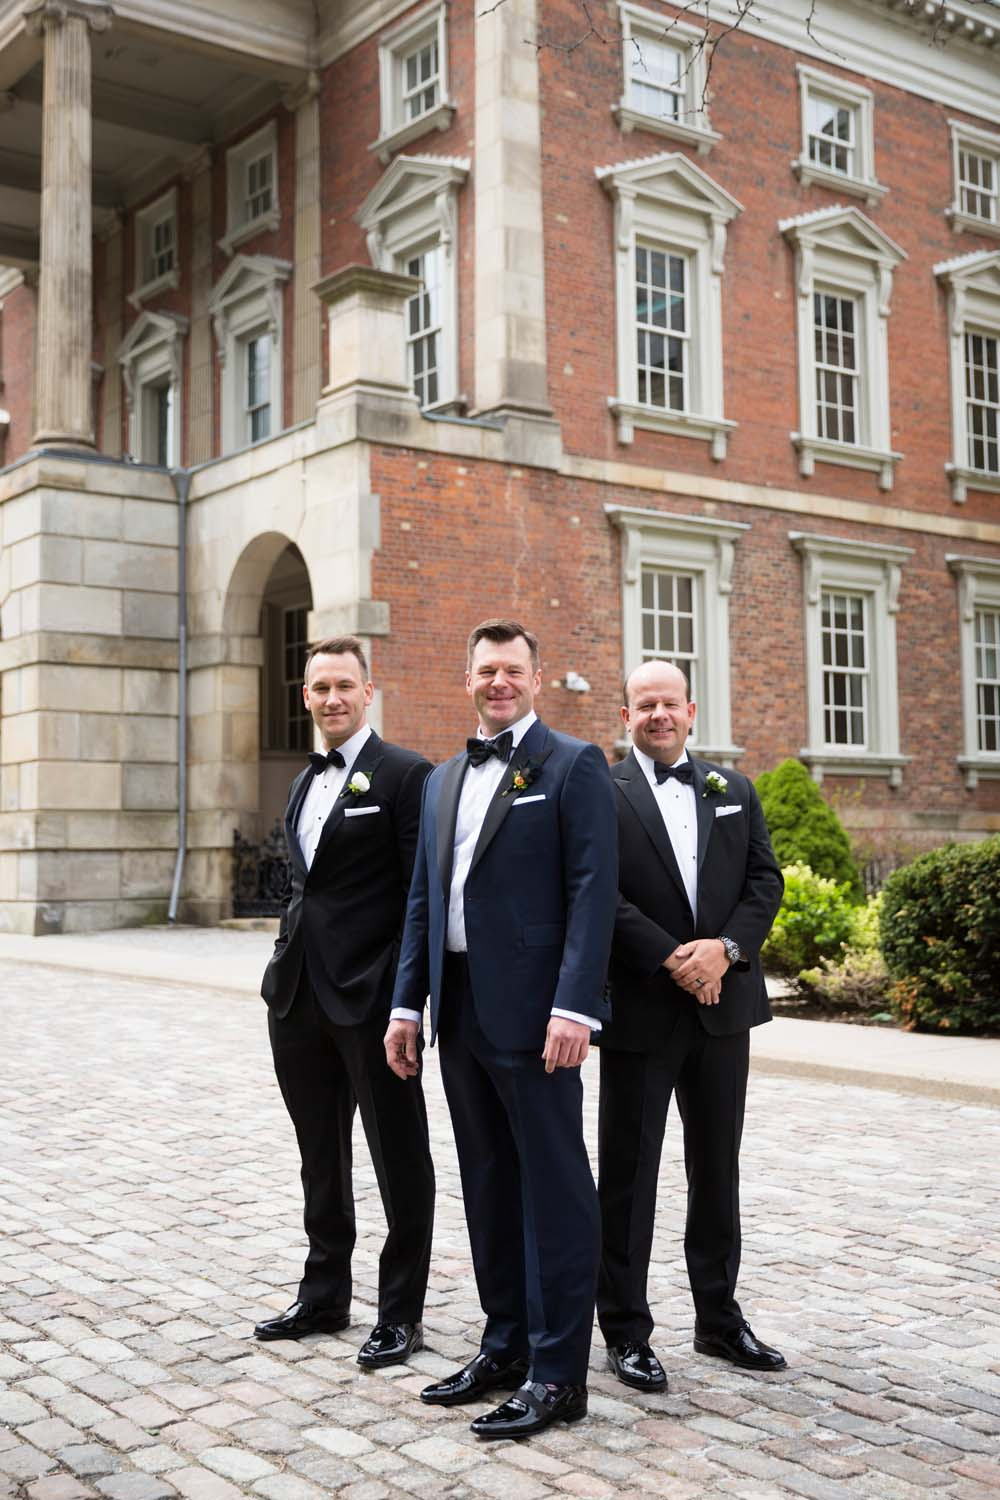 A Modern Wedding At The Great Hall In Toronto - Grooms party